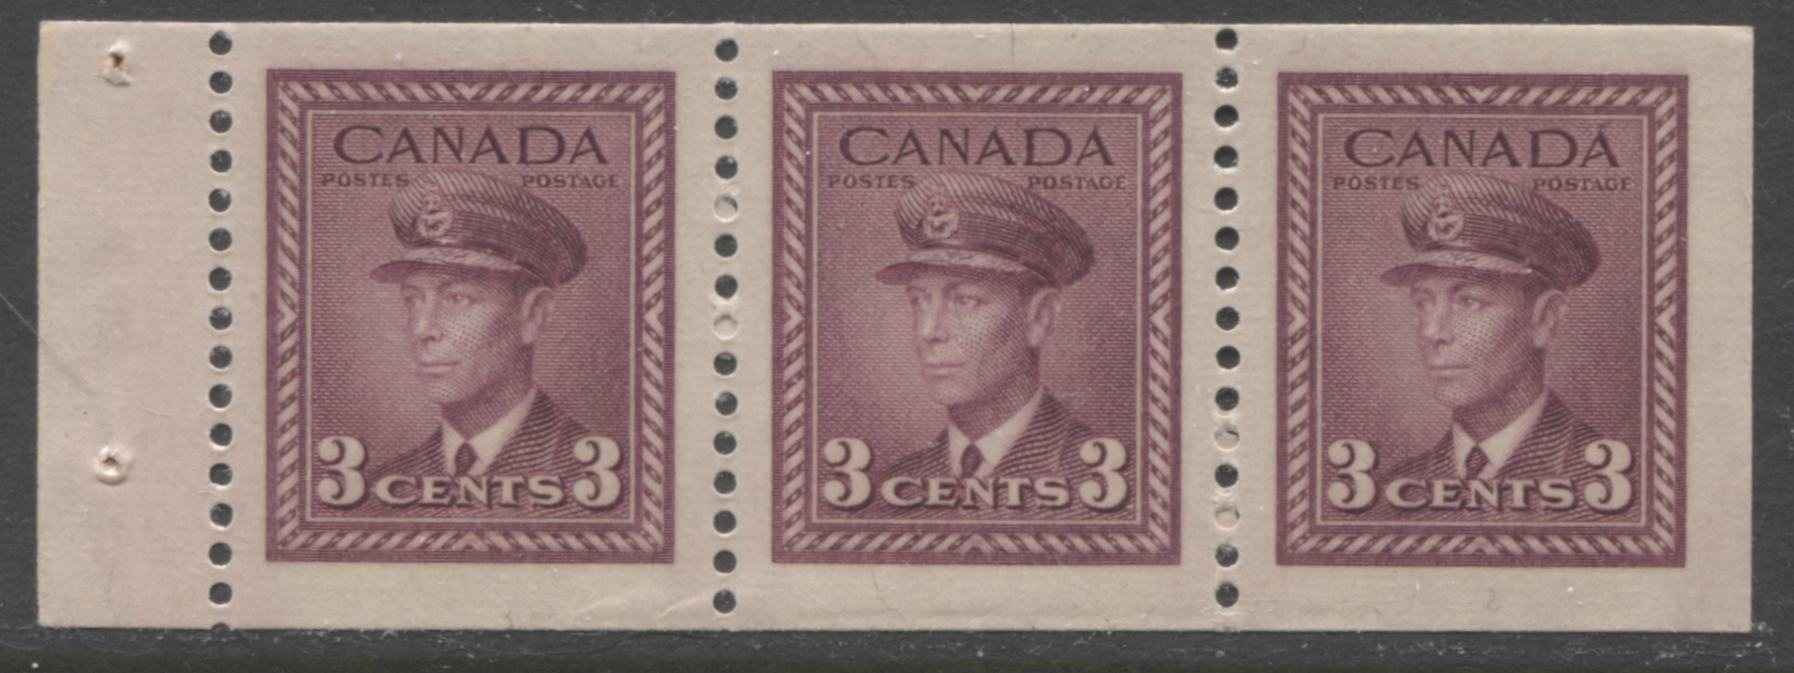 Canada #252b 3c Rose Purple King George VI, 1942-1949 War Issue, A Very Fine Mint NH Example of the Chewing Gum Booklet Pane Brixton Chrome